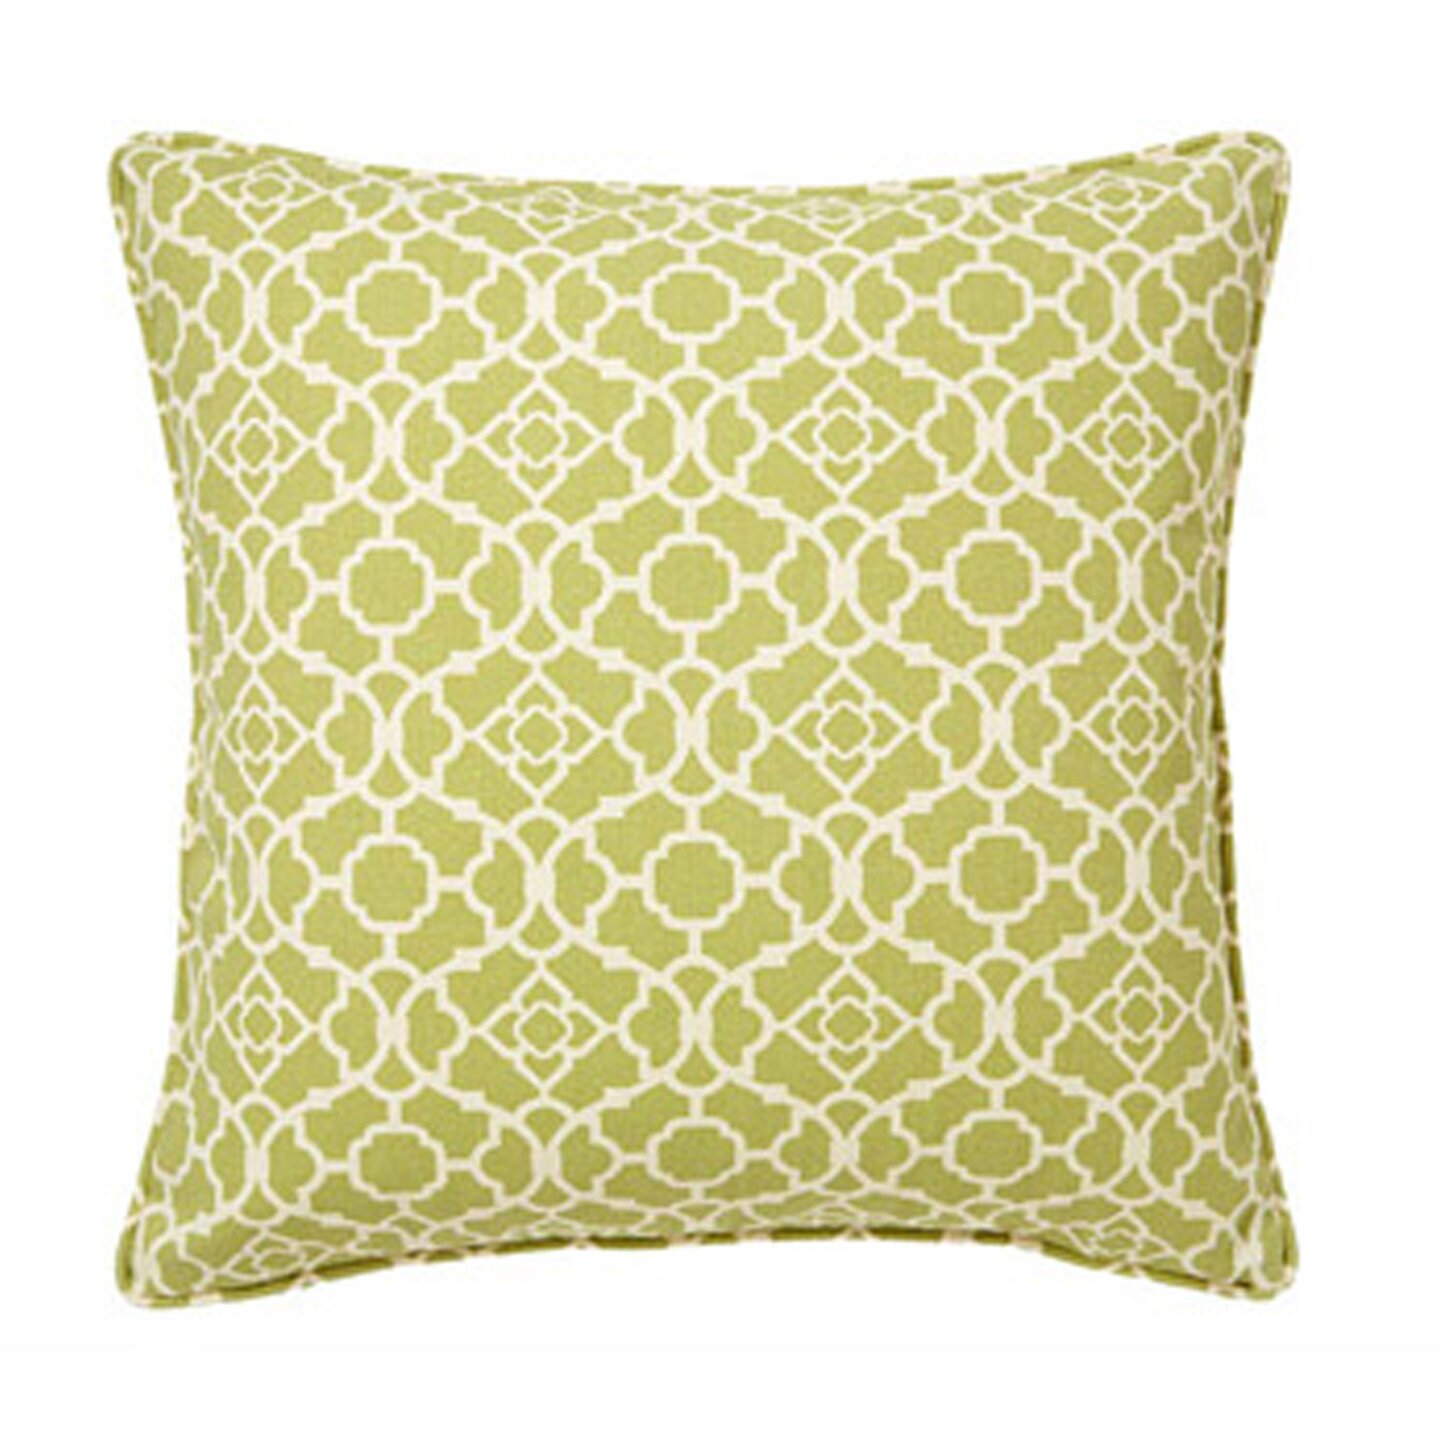 Jiti Decorative Pillows : Jiti Moroccan Indoor/Outdoor Throw Pillow & Reviews Wayfair